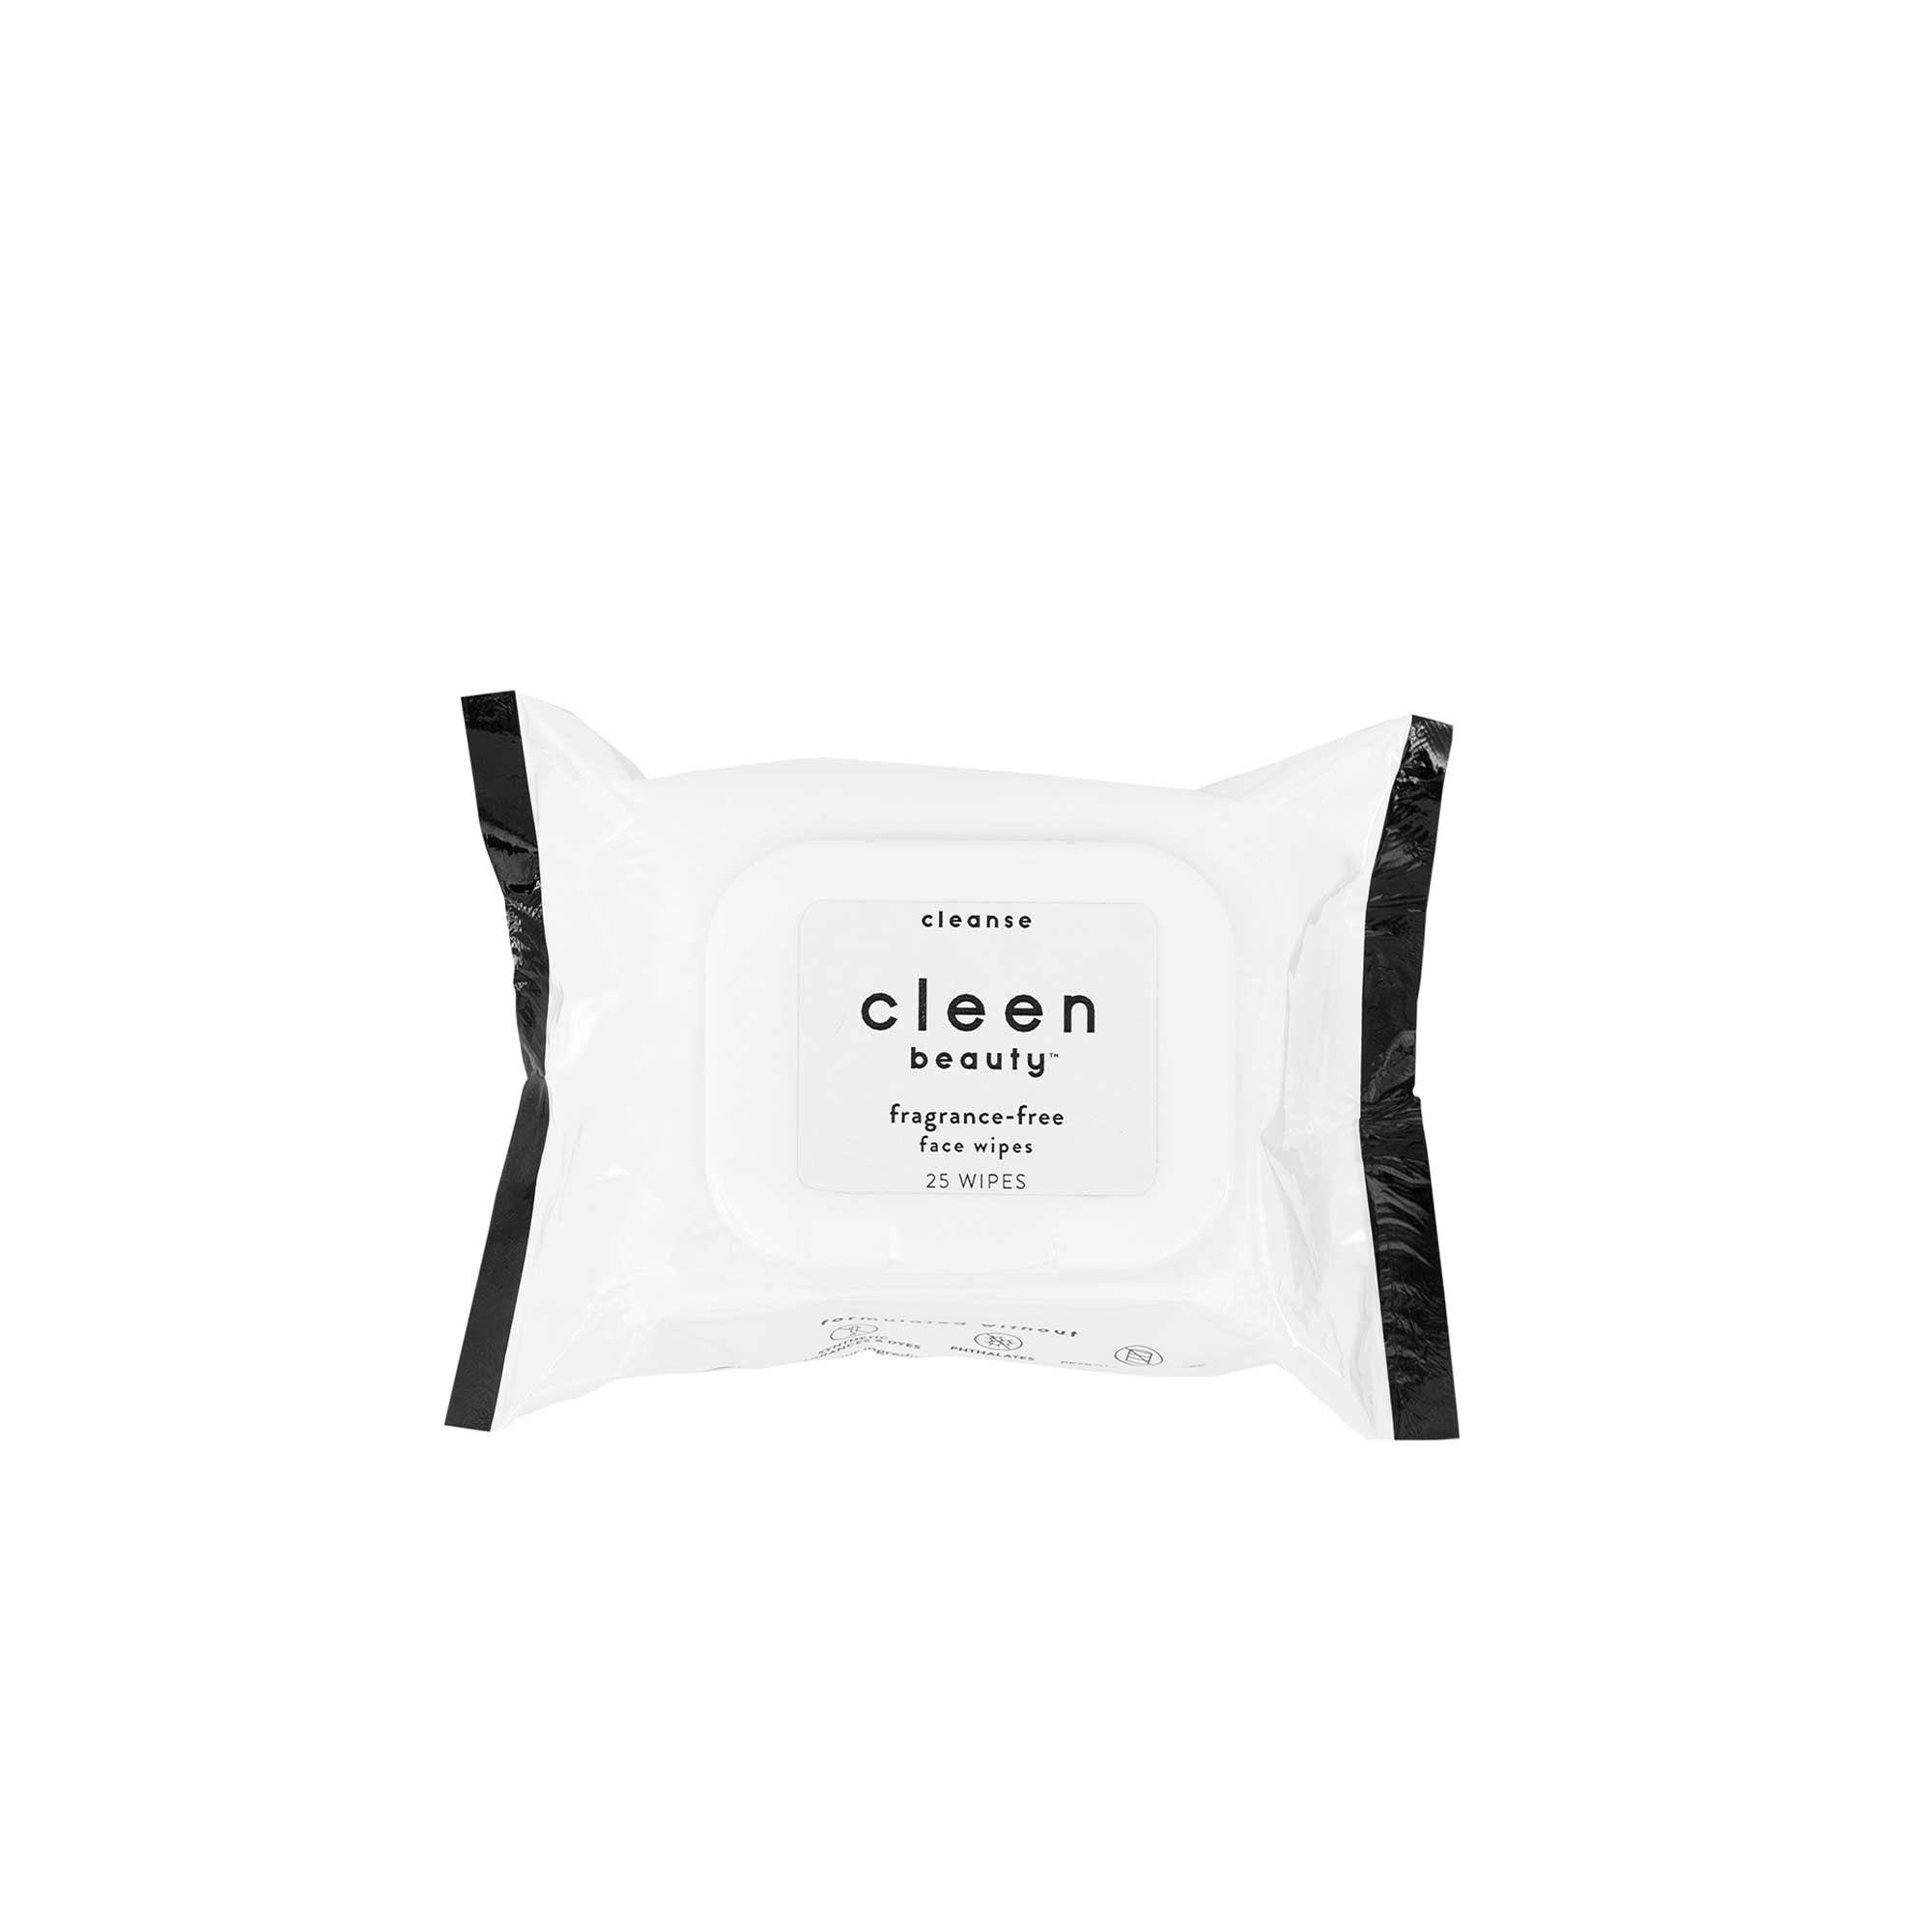 cleen beauty™ Fragrance-Free Face Wipes